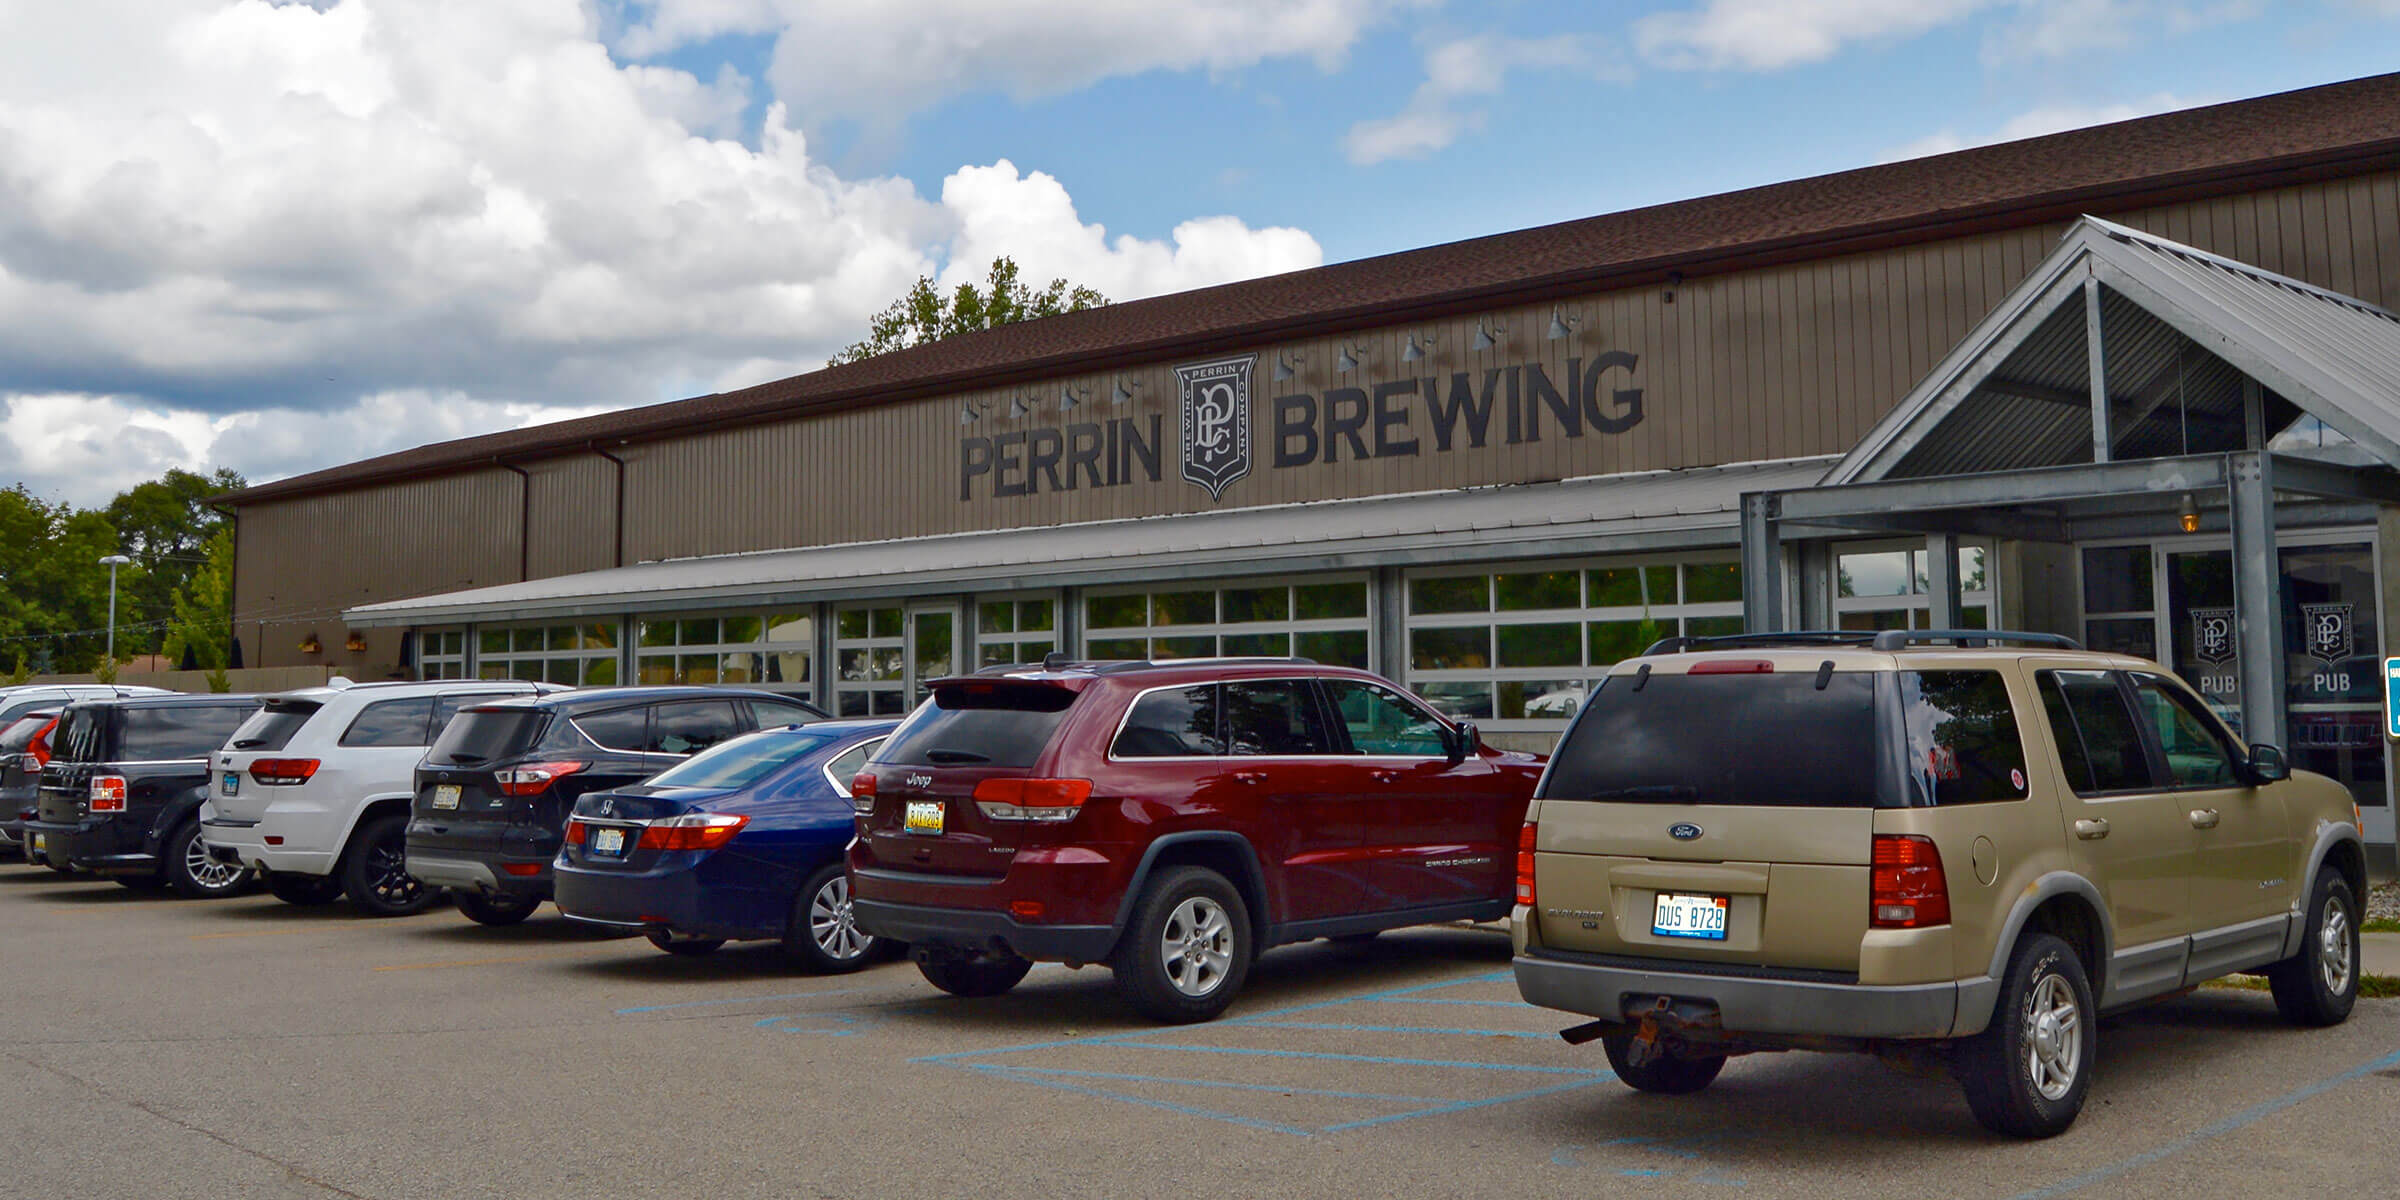 Outside the Entrance to Perrin Brewing Company in Grand Rapids, Michigan